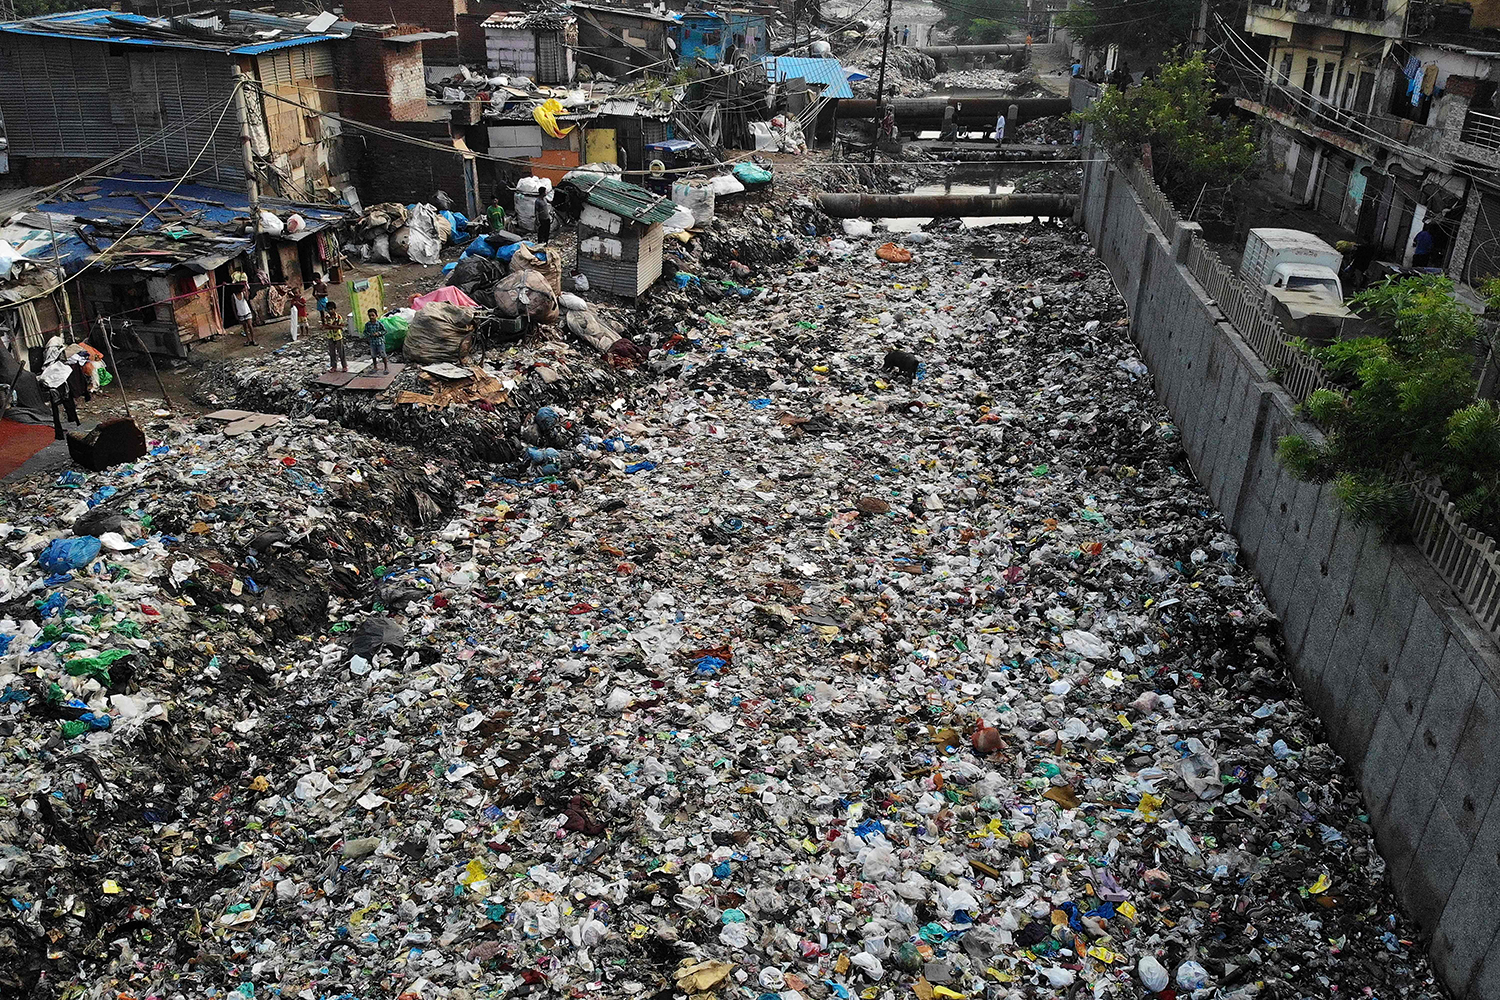 Children stand near a sewage drain canal covered in garbage in New Delhi on Oct. 4. NOEMI CASSANELLI/AFP via Getty Images